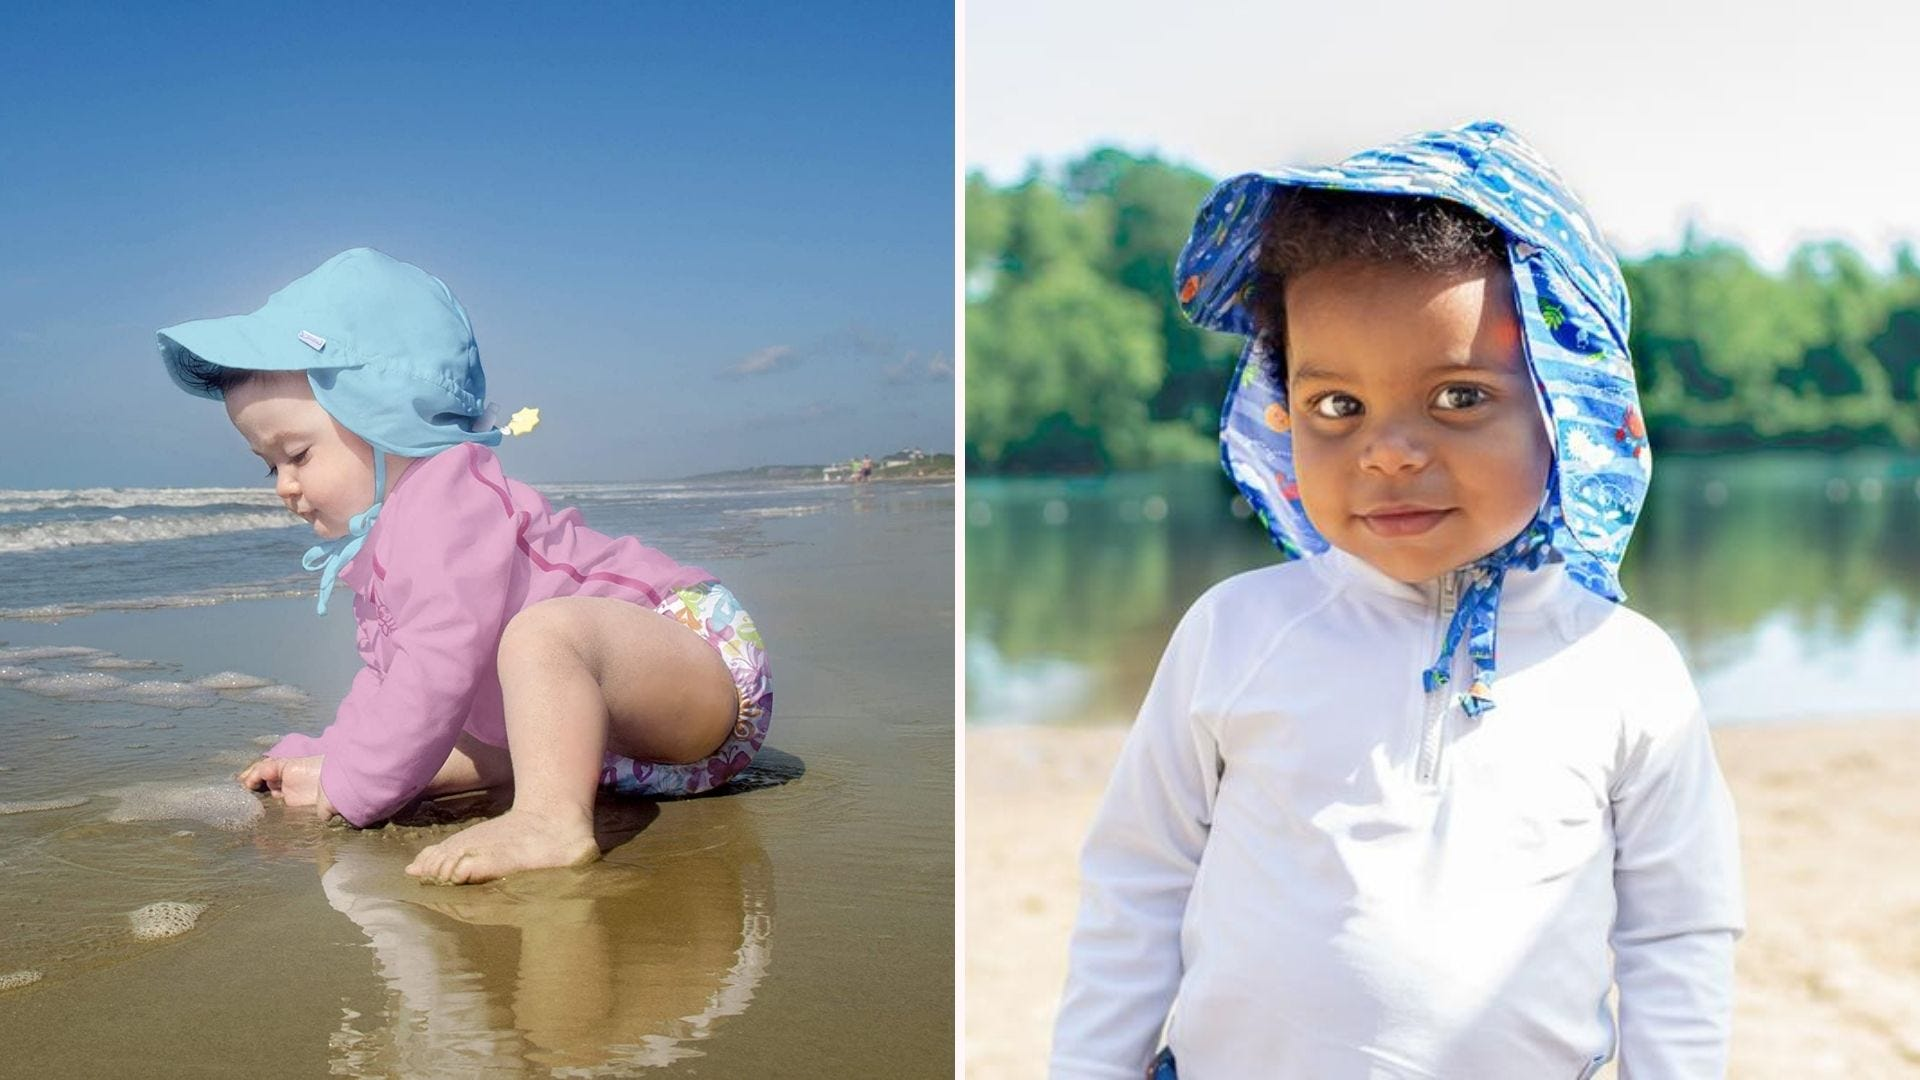 Toddlers wearing sun protection hats at the beach.